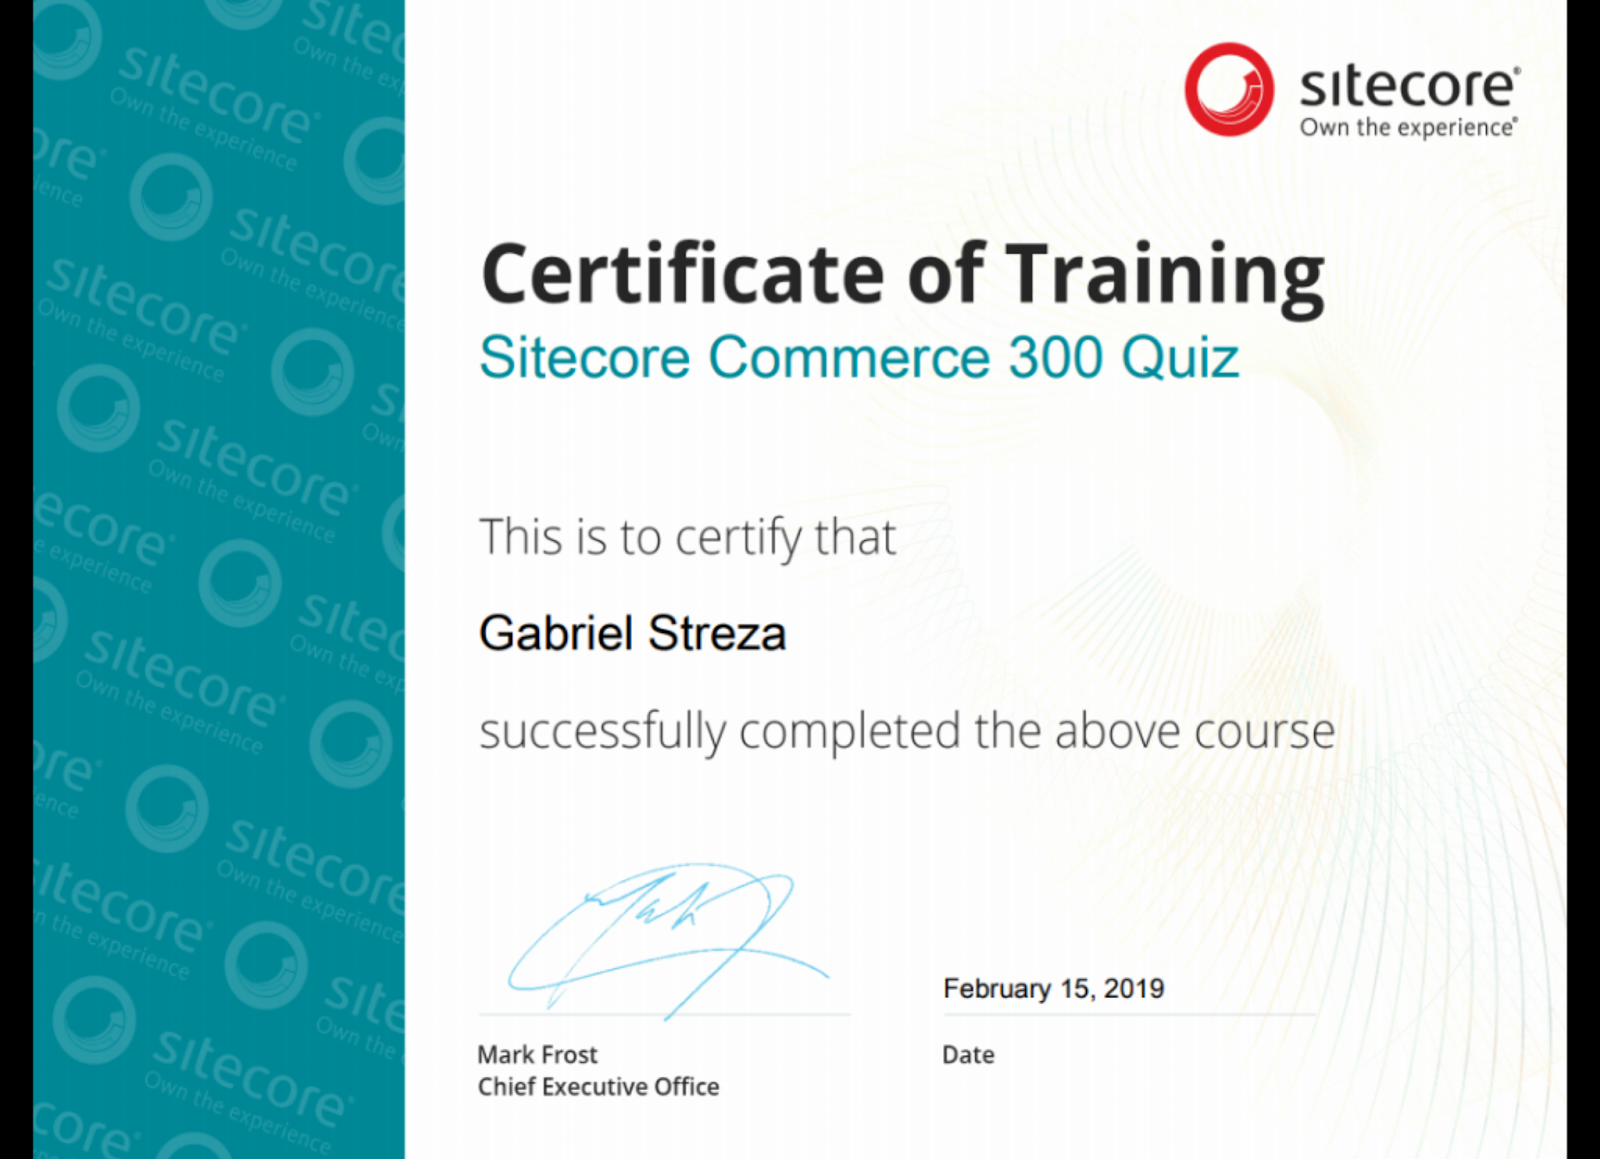 Implementing Sitecore Experience Commerce™ 9.0.2 (300